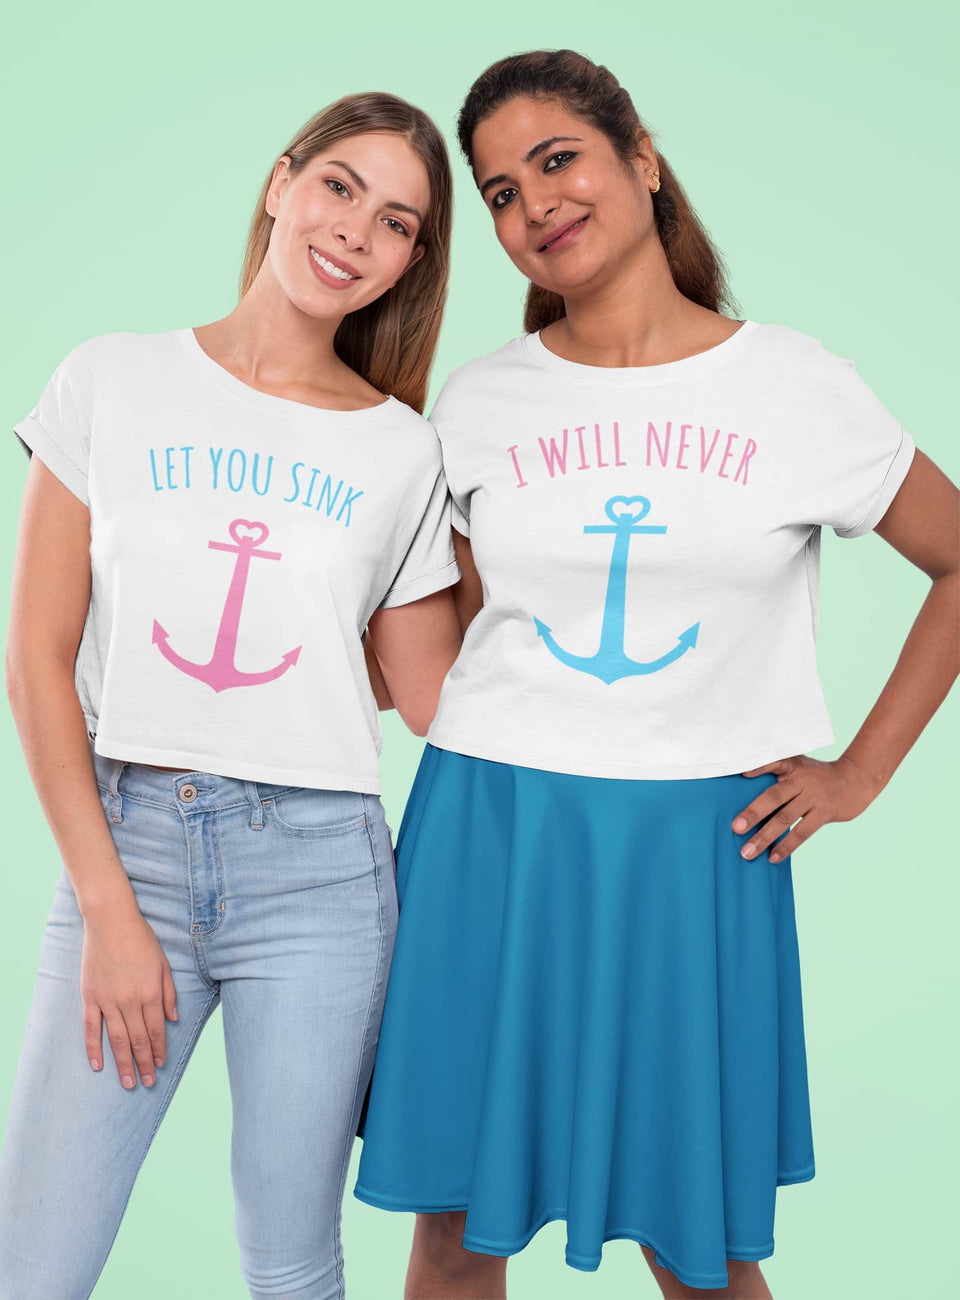 I Will Never Let You Sink Best Friend - BFF Shirts